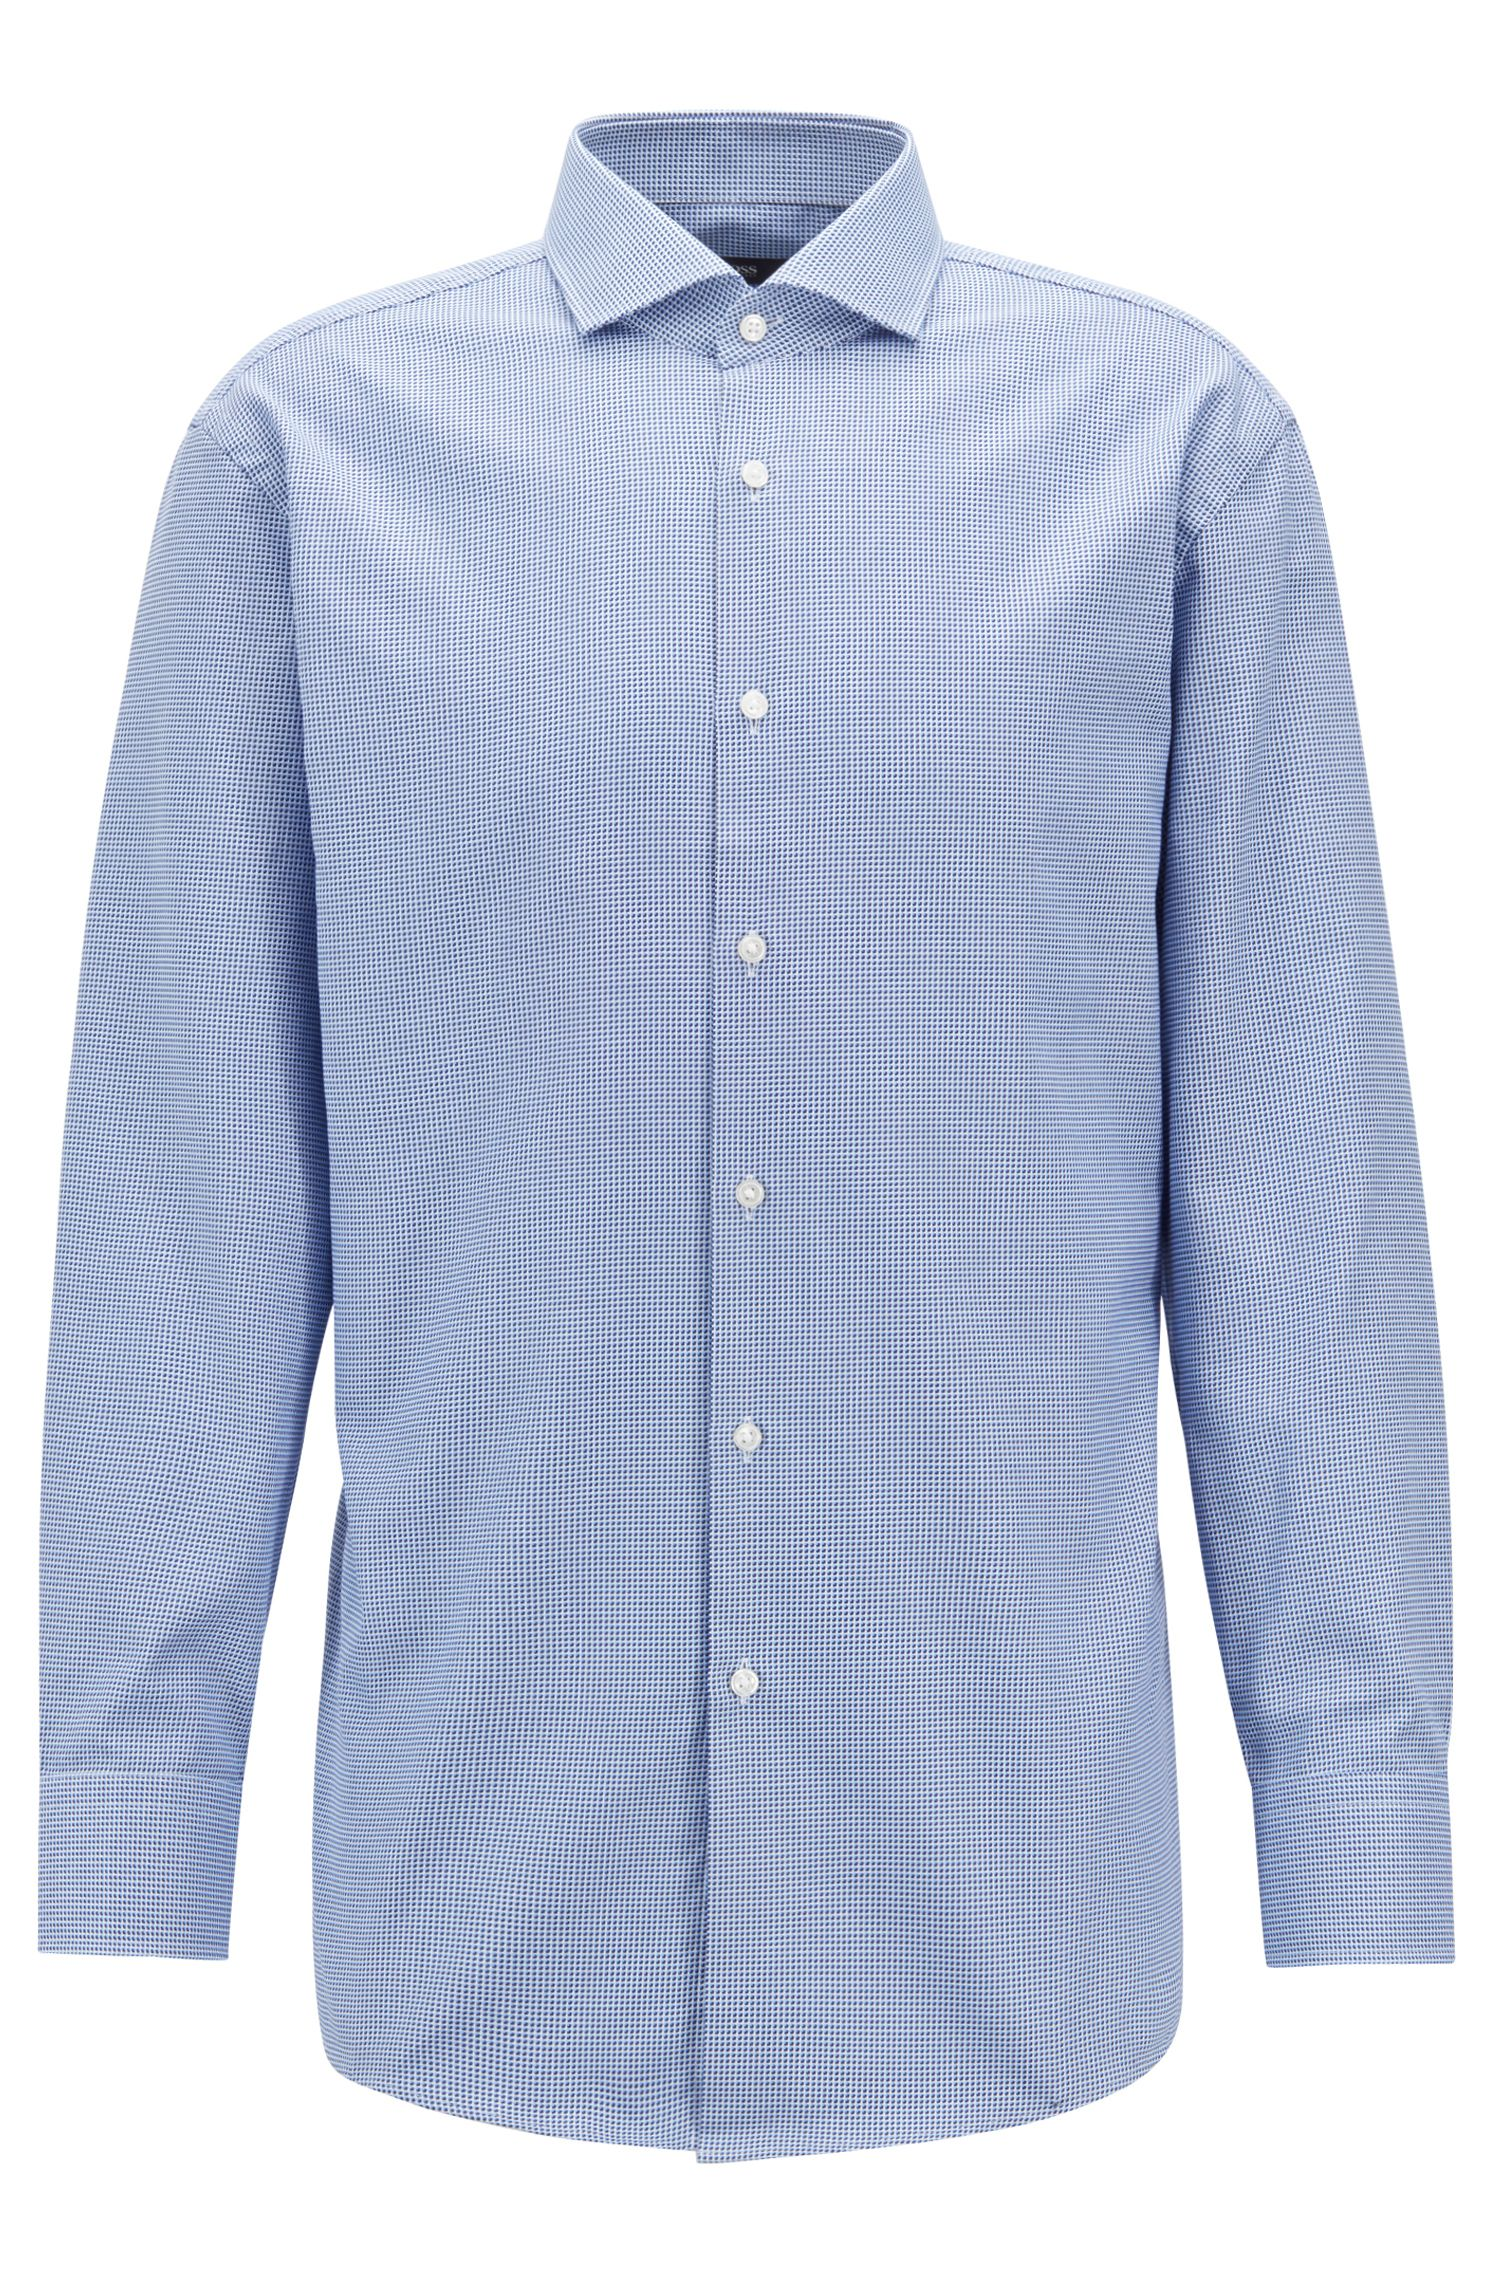 Sharp-fit shirt with three-dimensional micro structure, Light Blue